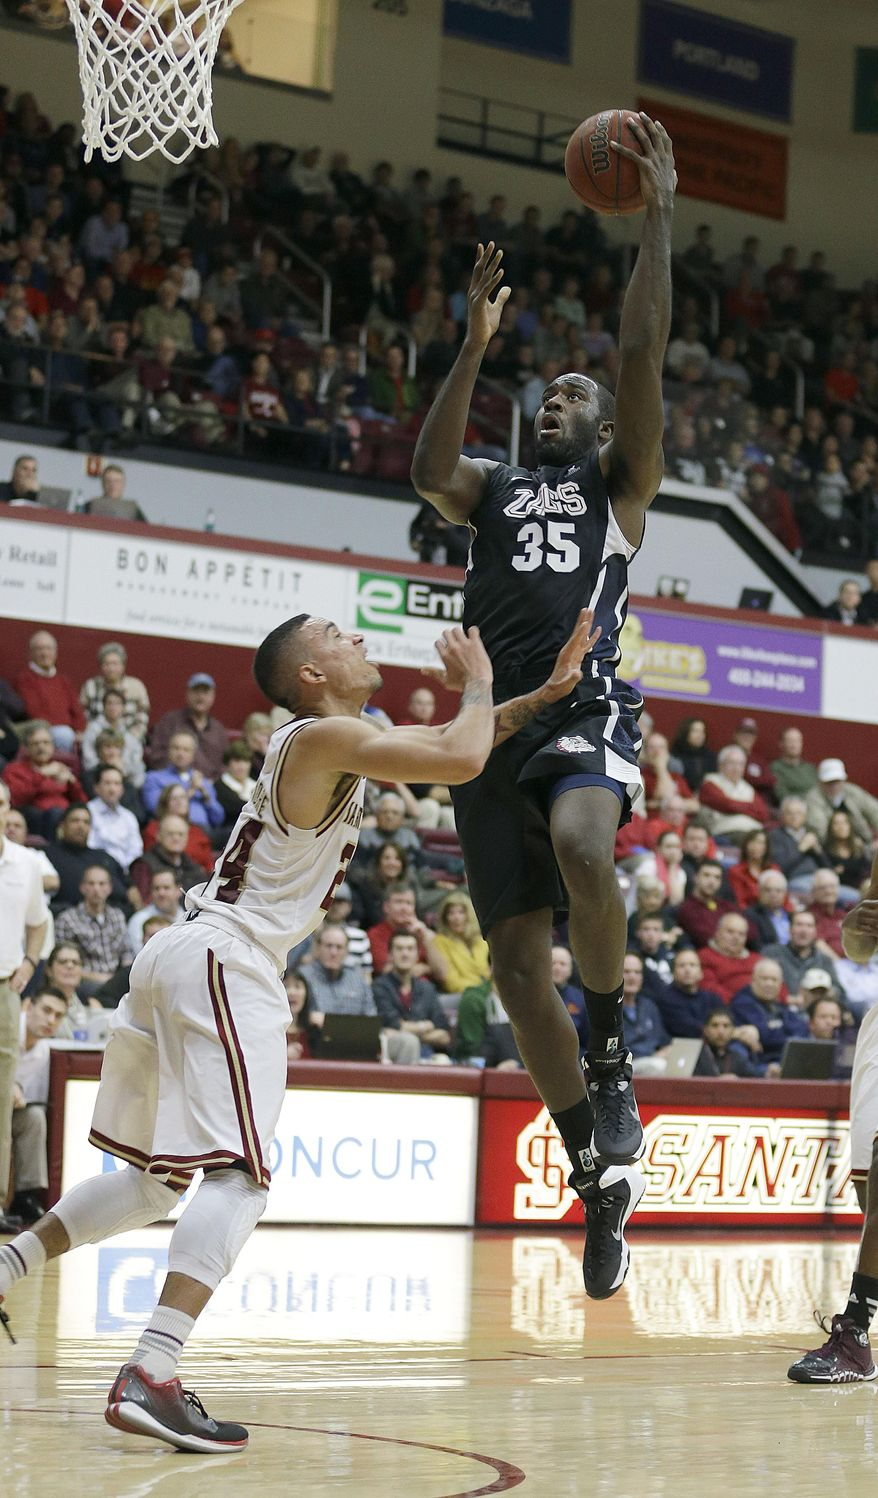 Gonzaga forward Sam Dower (35) drives the ball against Santa Clara guard Evan Roquemore in the first half of an NCAA college basketball game Wednesday, Jan. 29, 2014, in Santa Clara, Calif. (AP Photo/Tony Avelar)